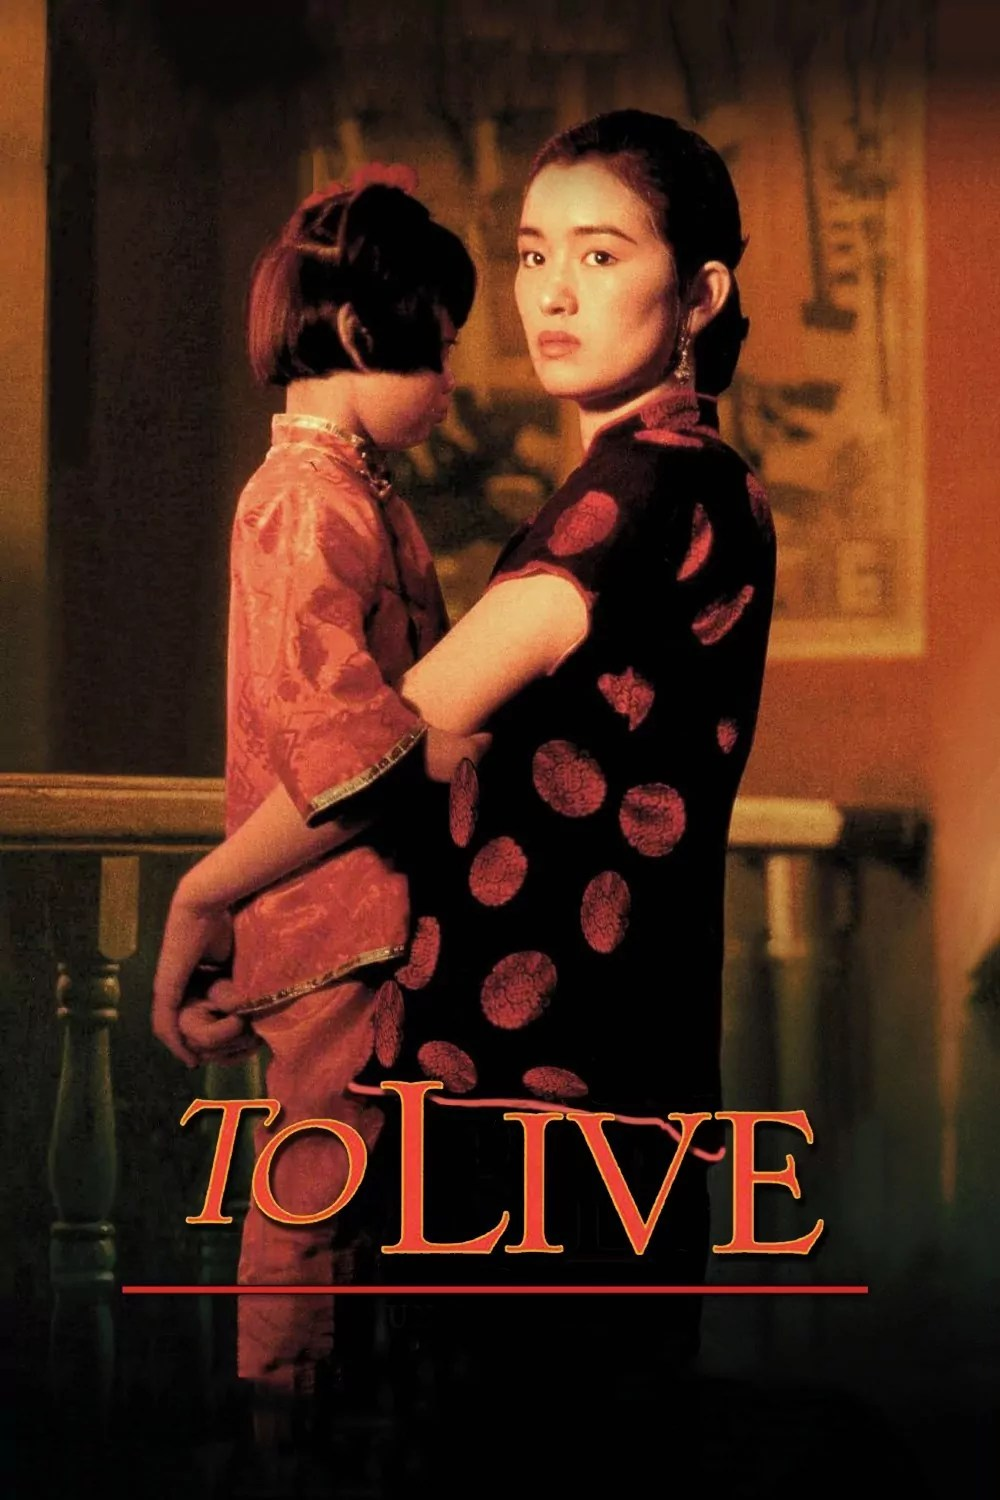 to live 1994 � a humanist masterpiece high on films